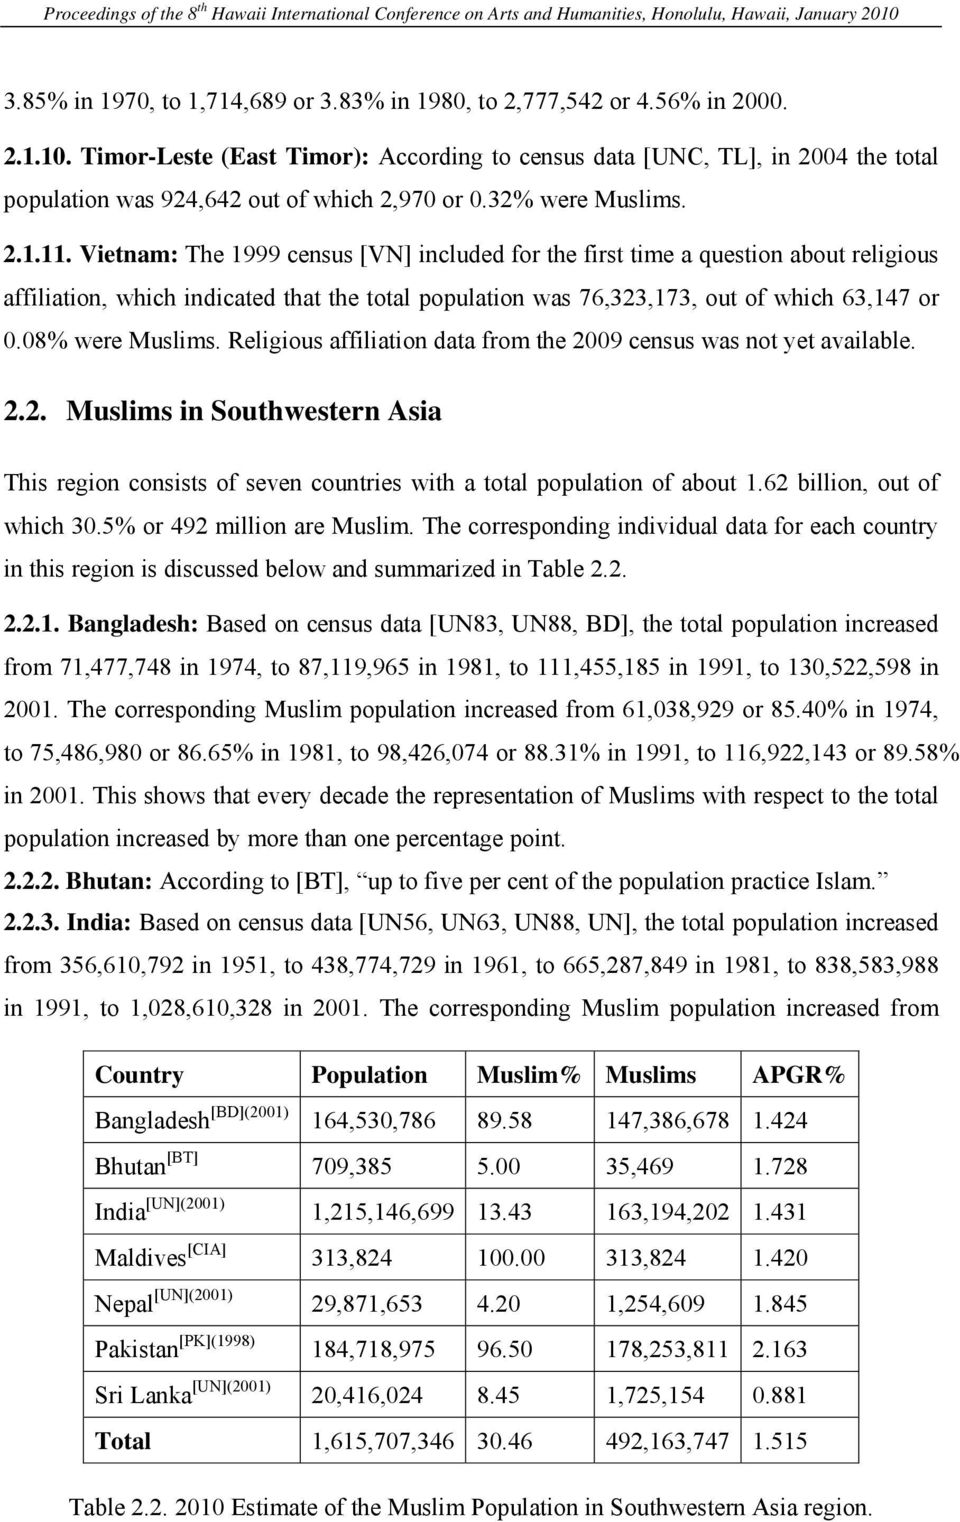 Vietnam: The 1999 census [VN] included for the first time a question about religious affiliation, which indicated that the total population was 76,323,173, out of which 63,147 or 0.08% were Muslims.